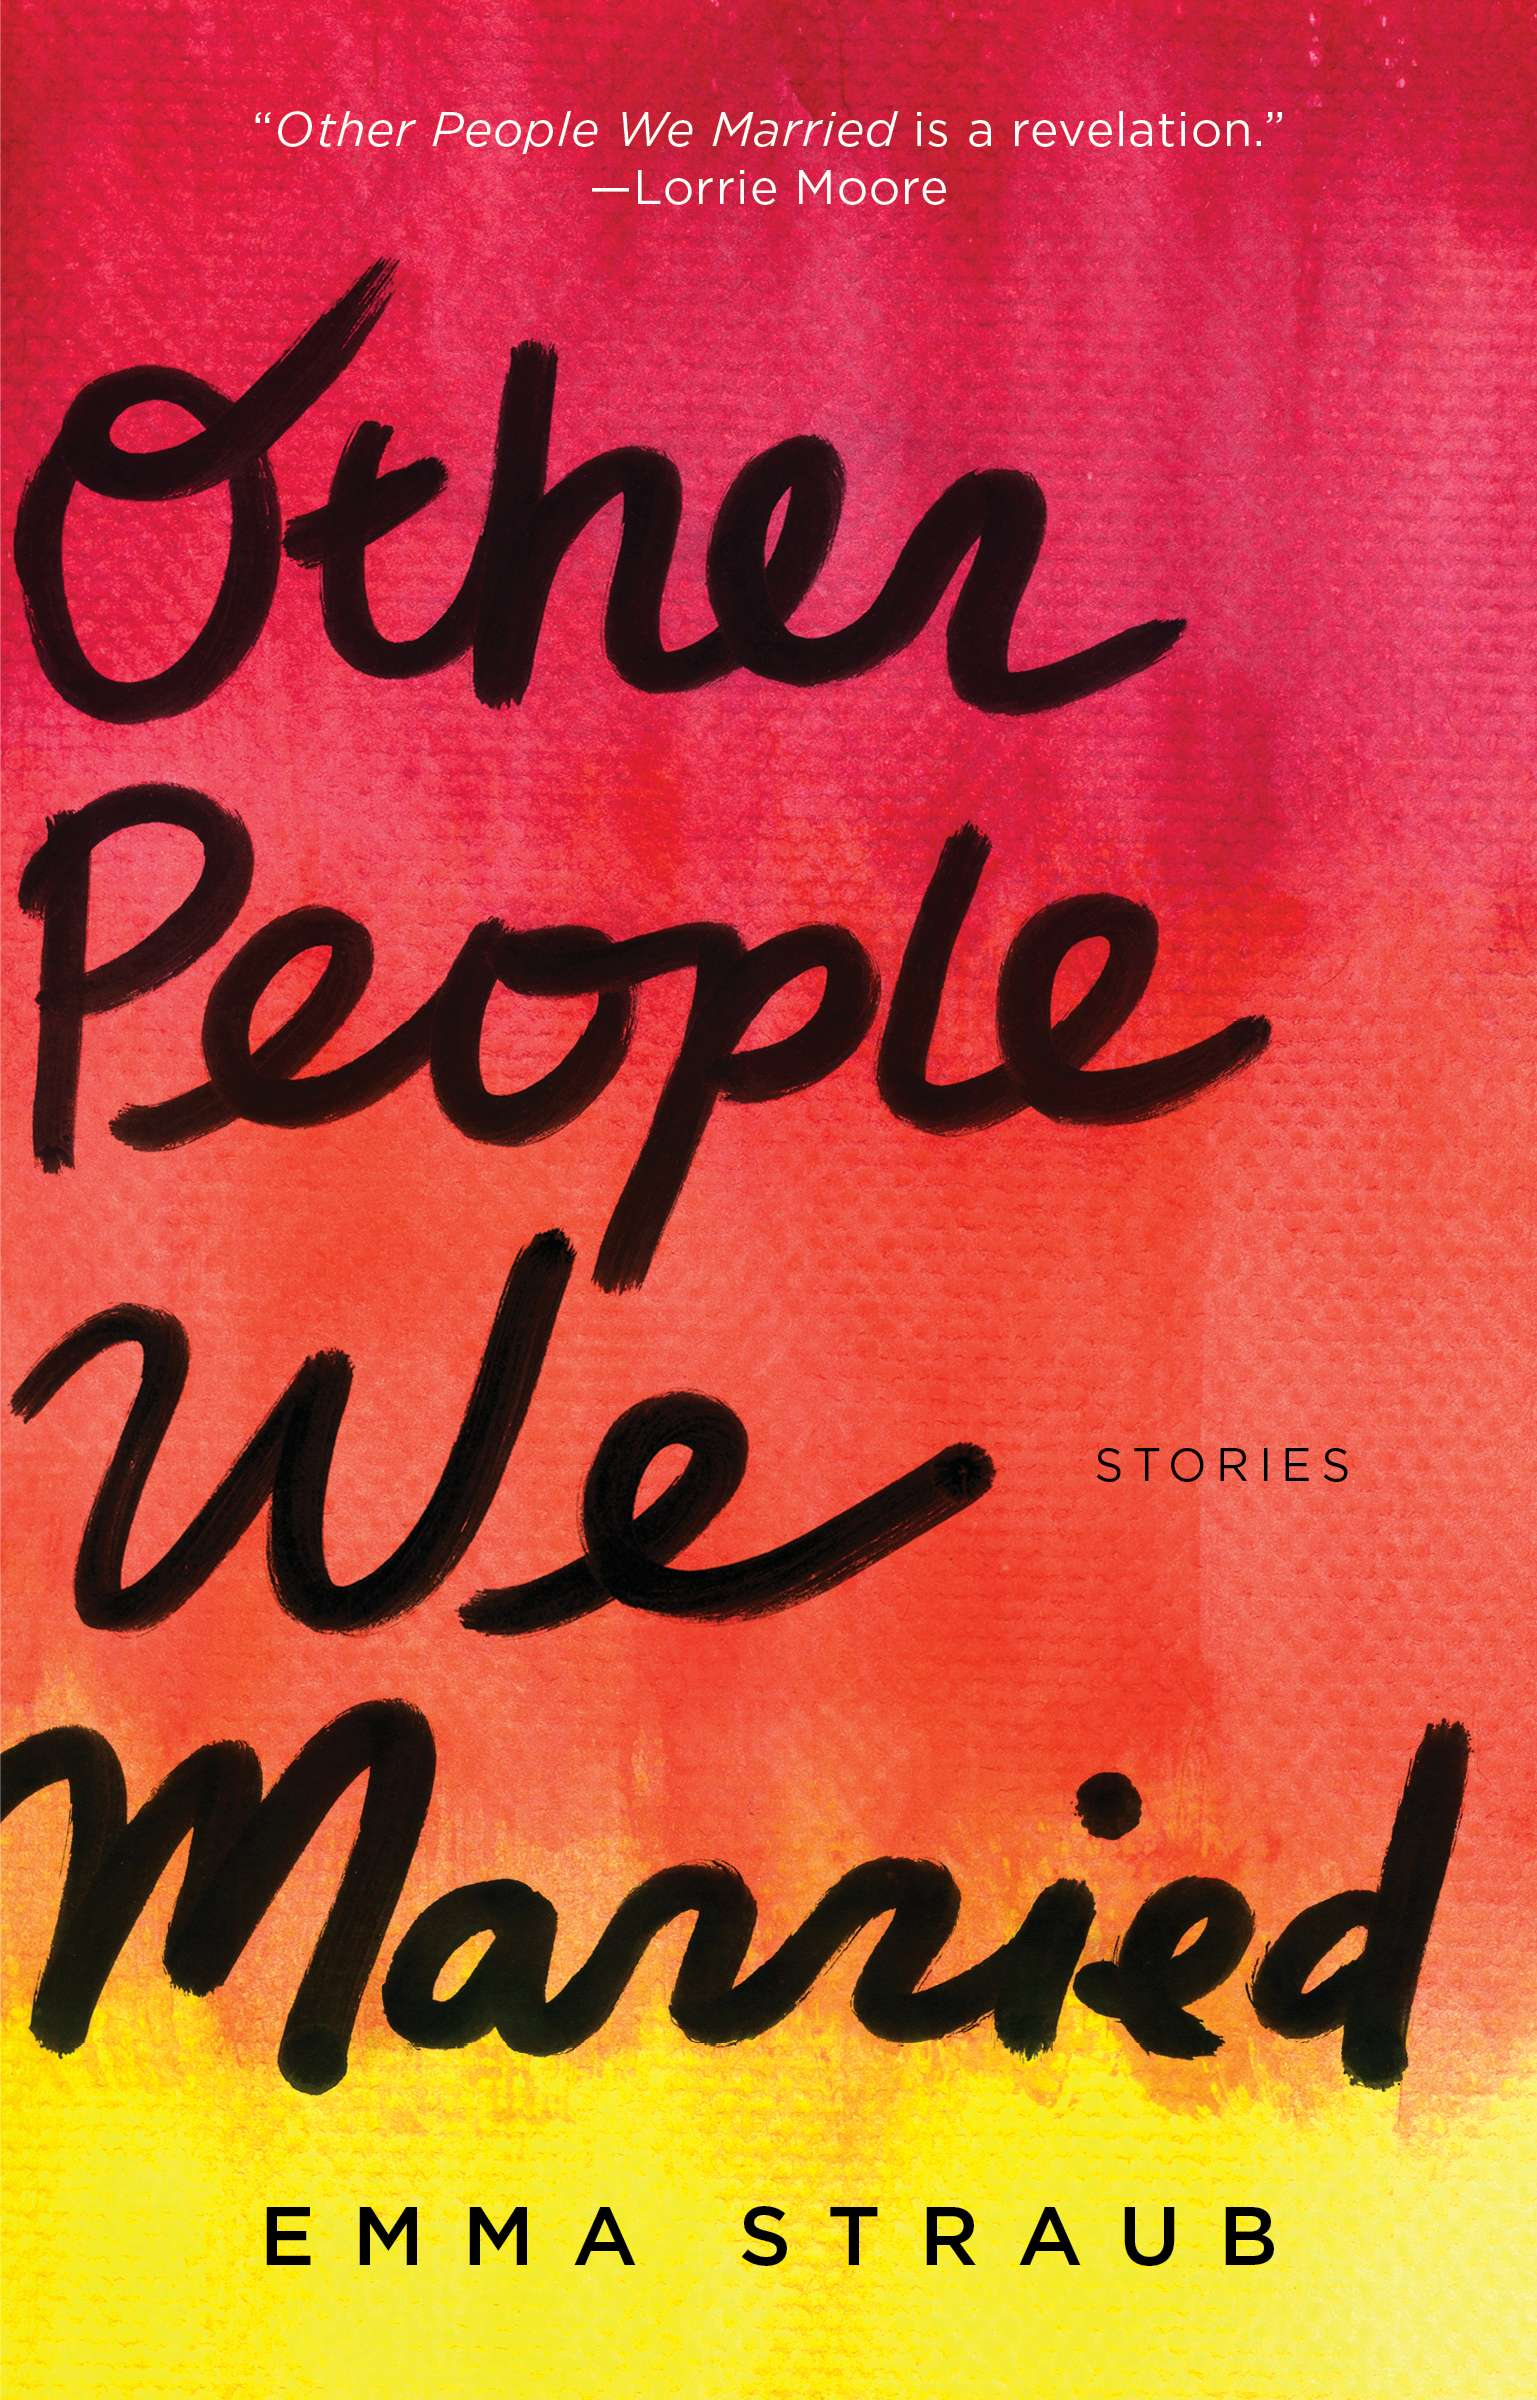 Emma Straub's Other People We Married